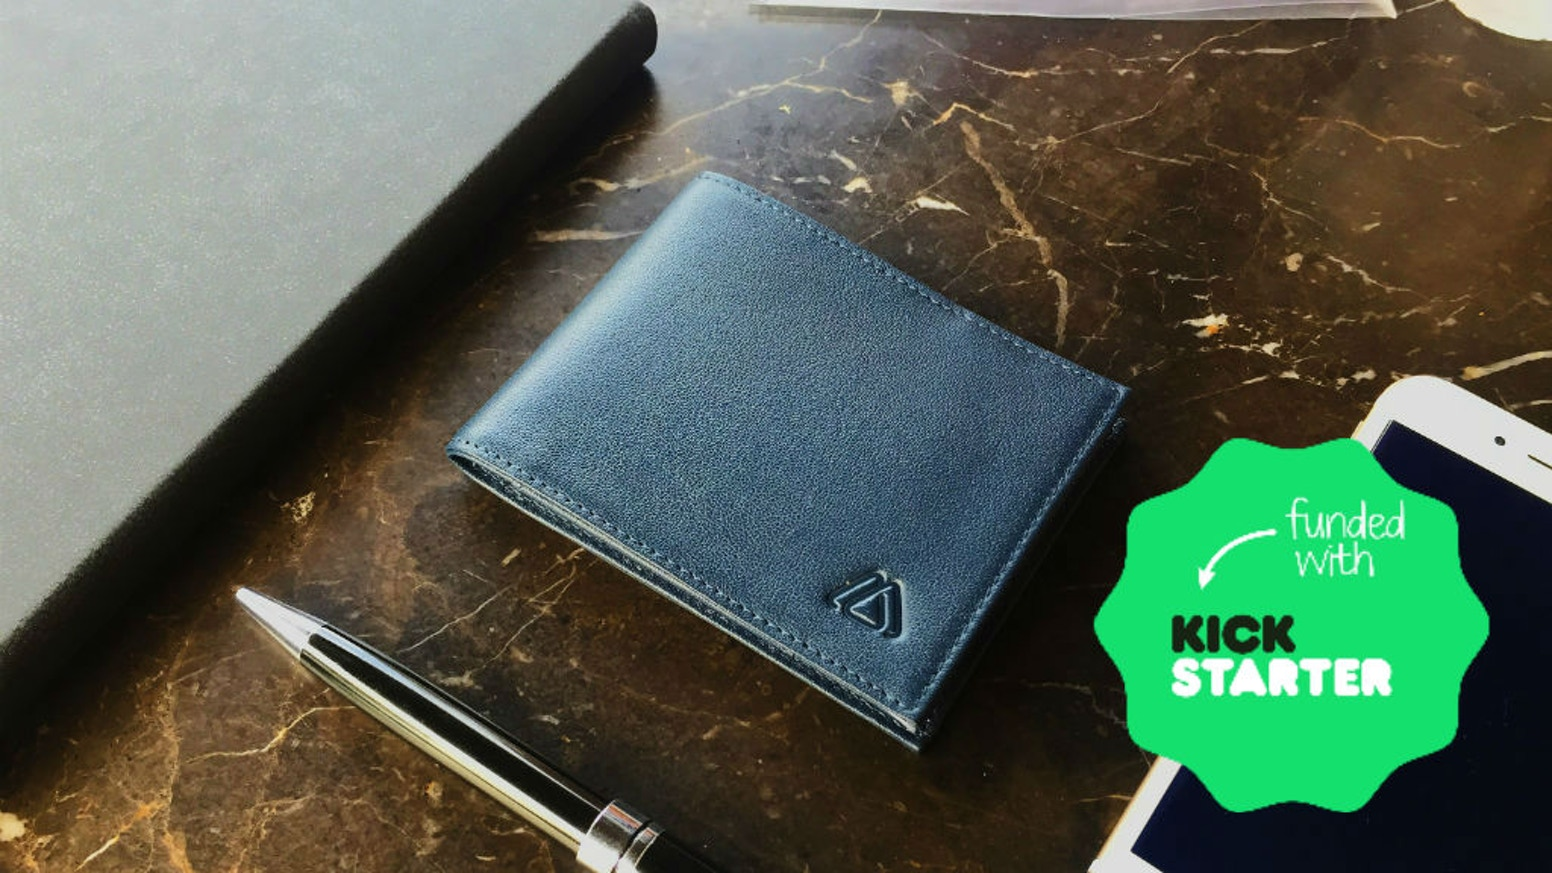 Deuce by Modest Mark is a discreet slim wallet that carries all your essentials, while keeping your personal information safe with RFID protection.